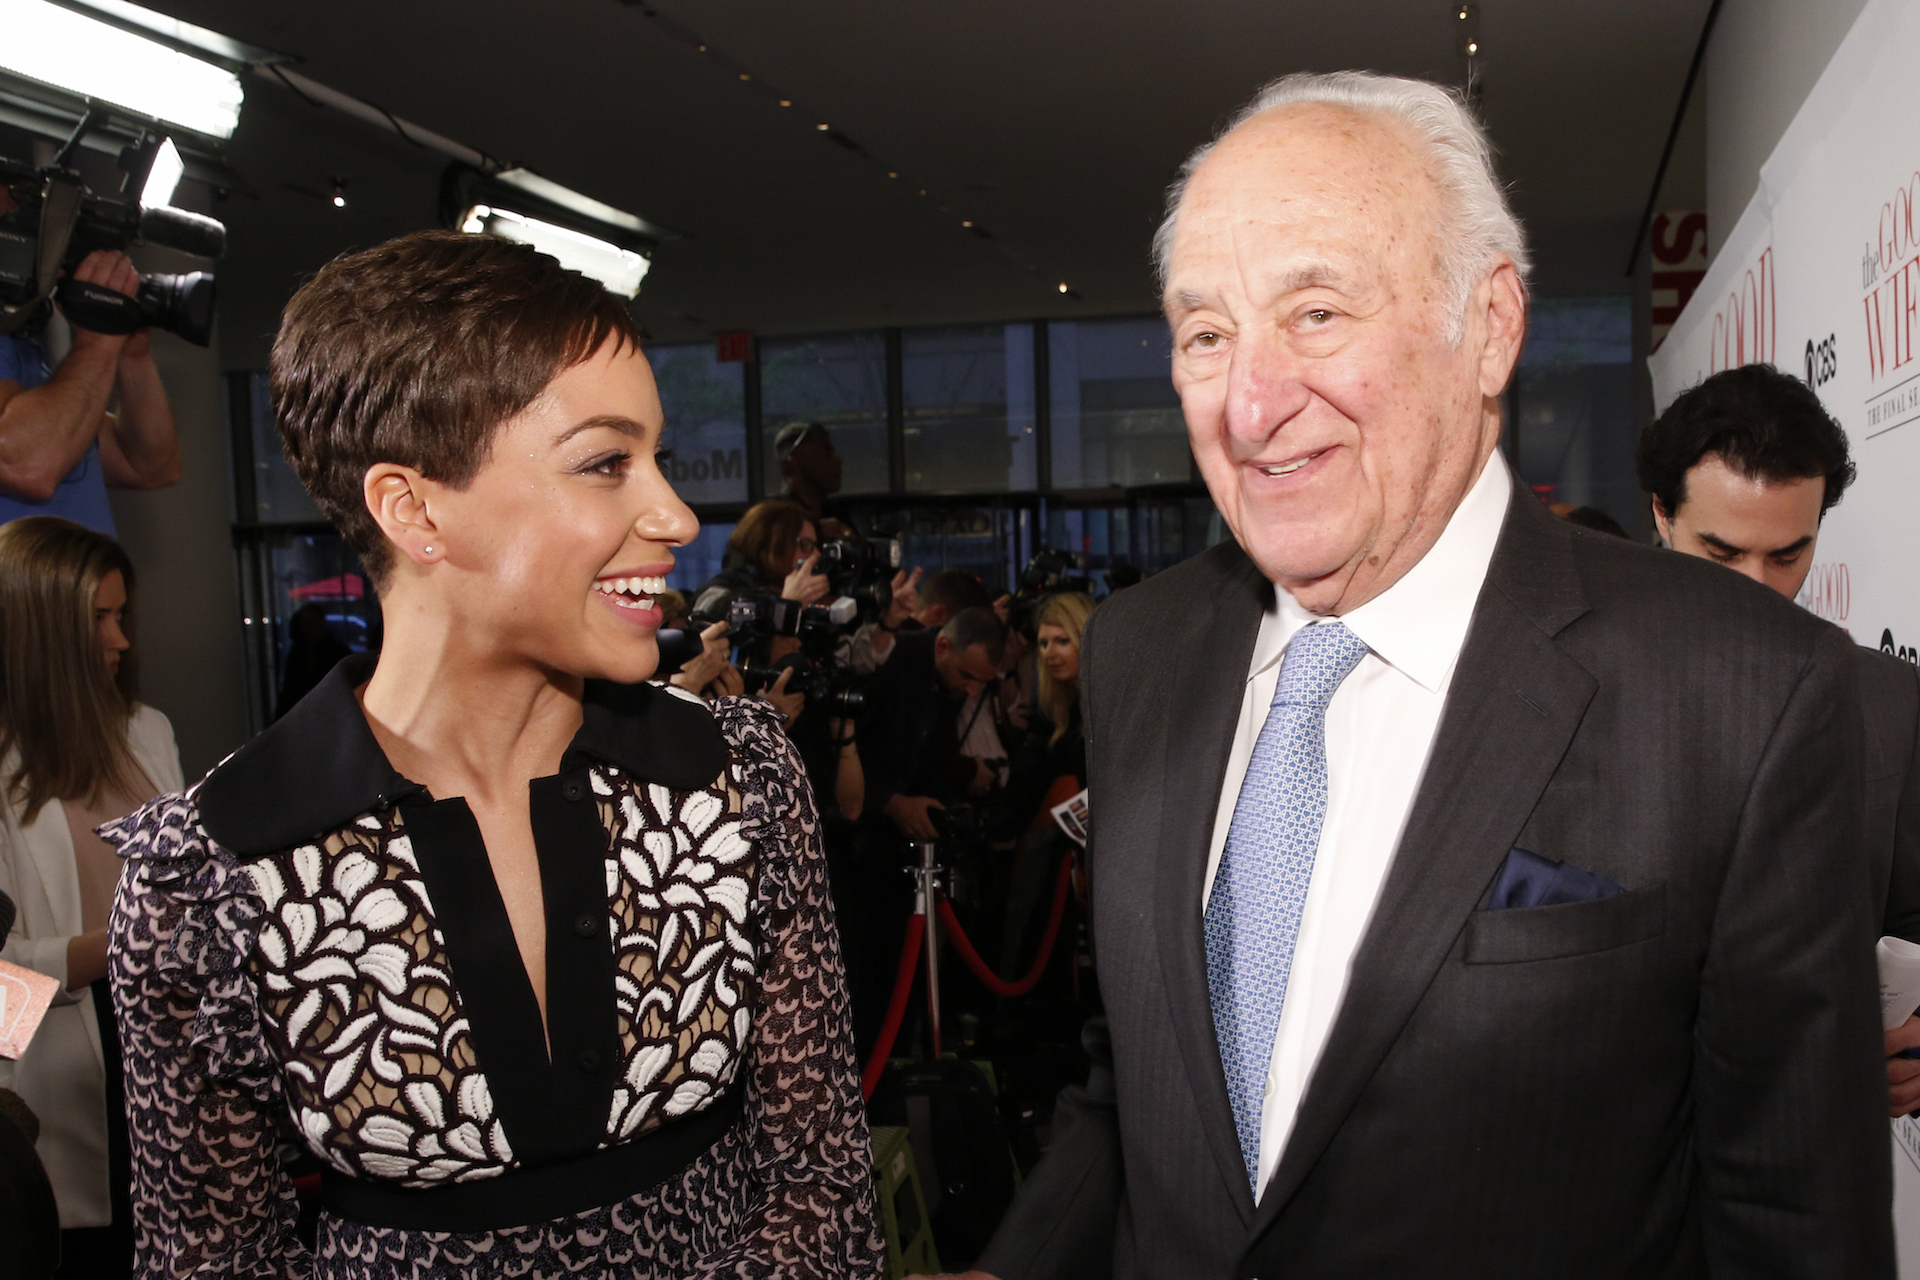 Cush Jumbo and Jerry Adler